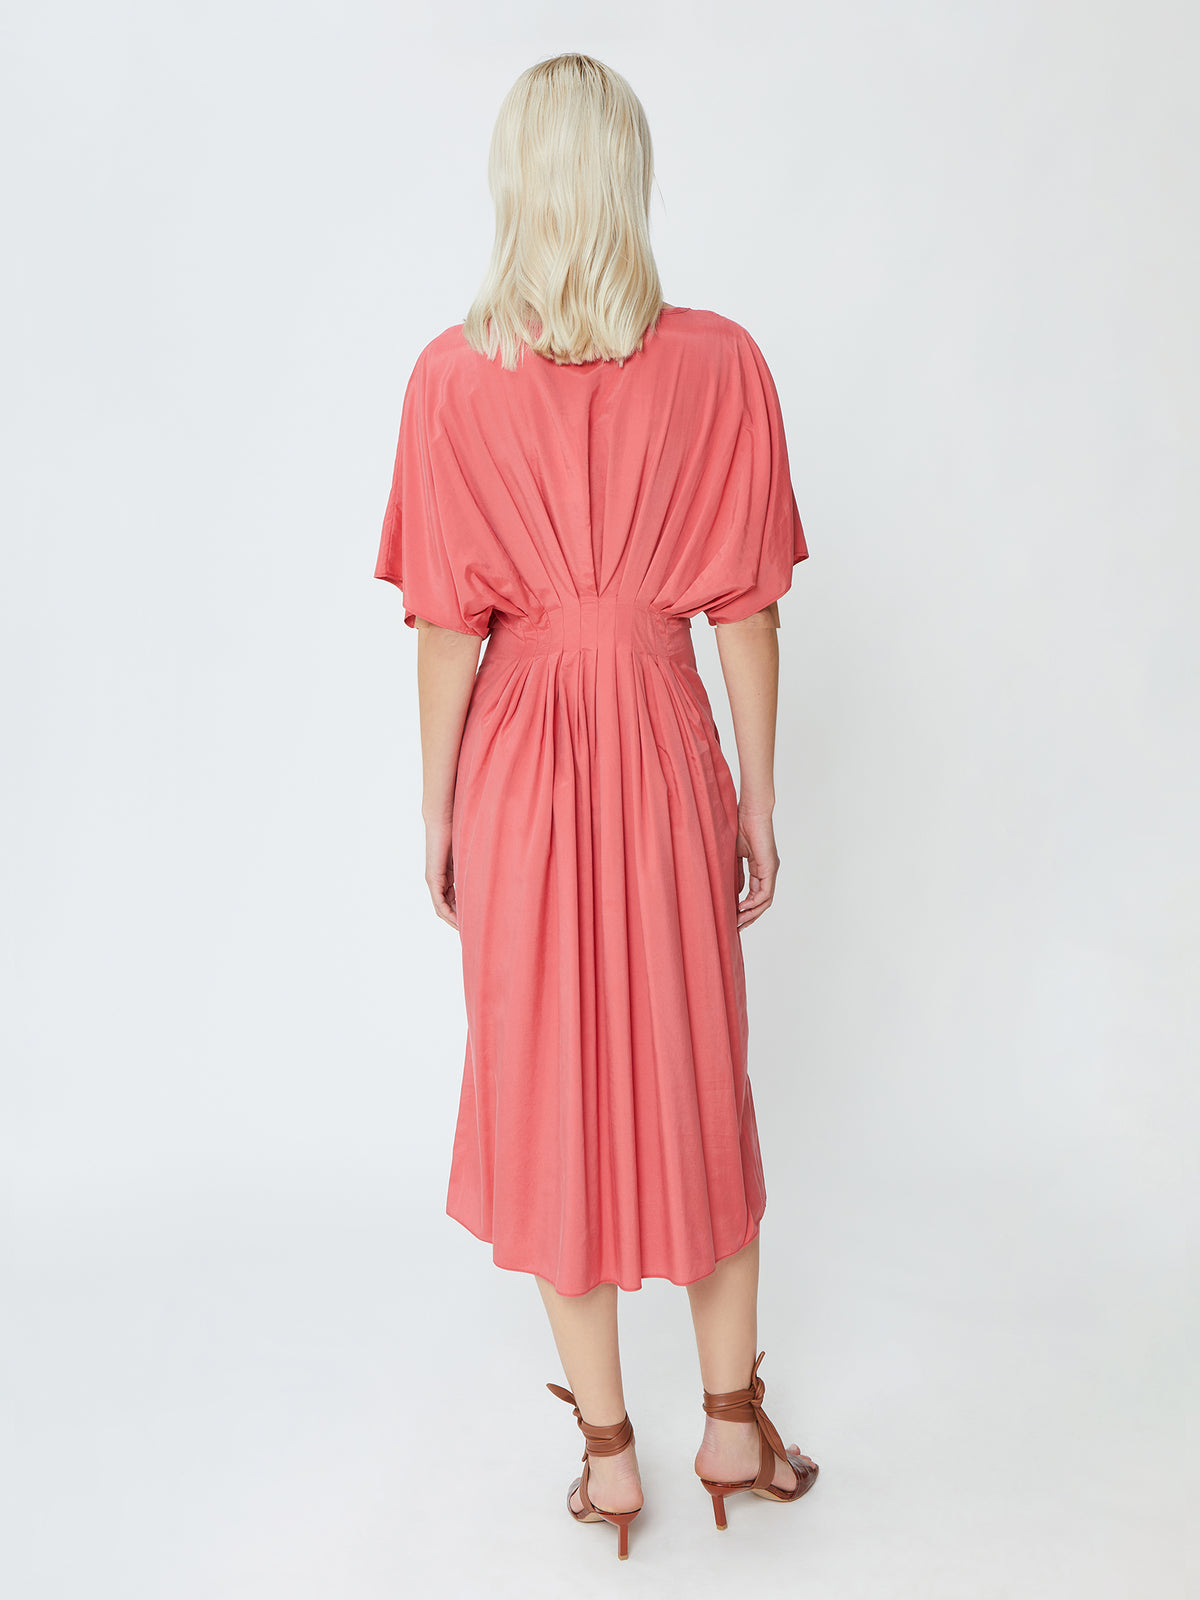 Sand Dune Dress - Coral